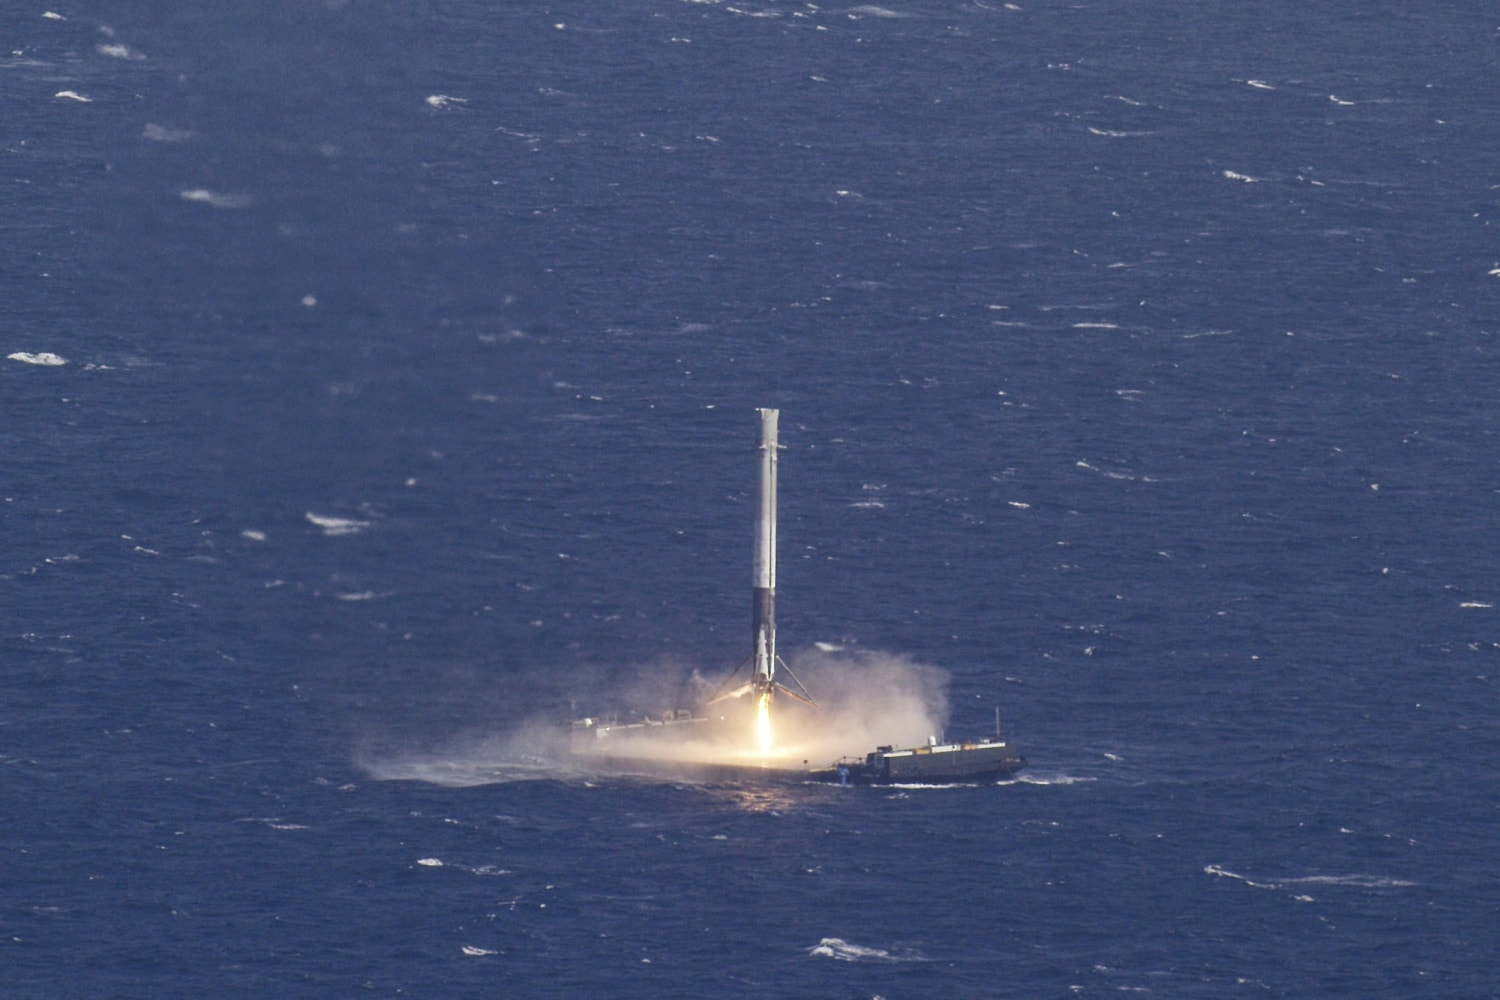 image handout photo of the reusable main stage booster from the spacex falcon 9